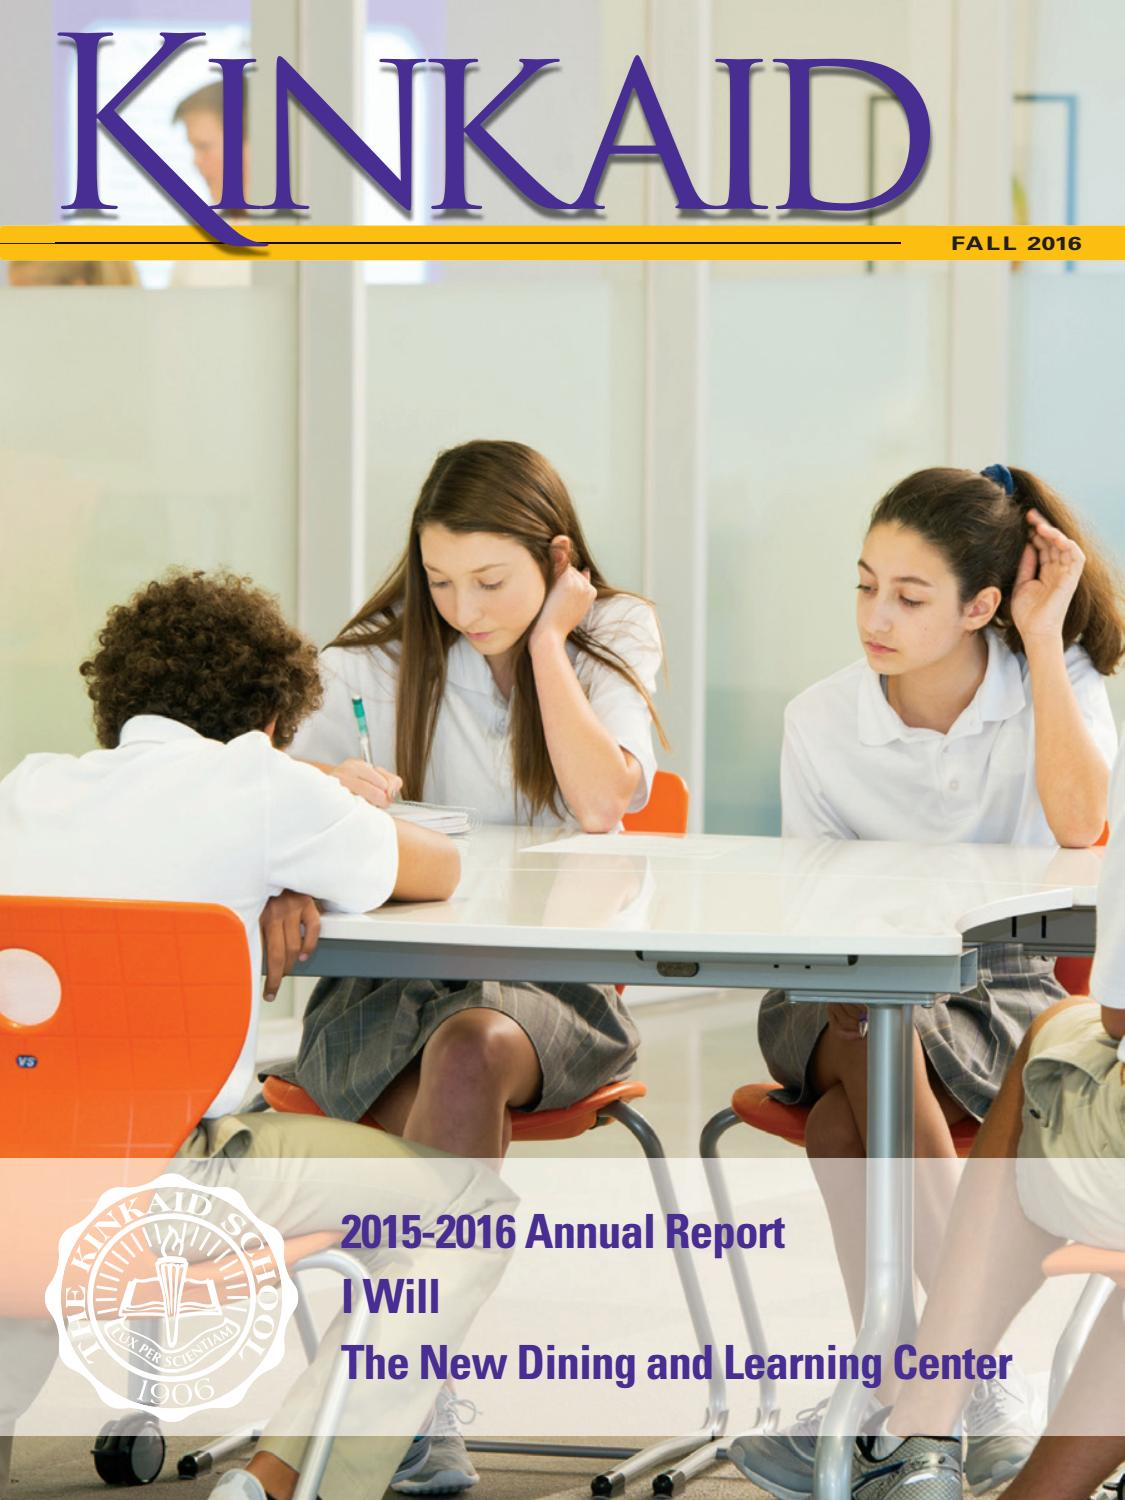 Kinkaid Fall Magazine 2016 by The Kinkaid School - issuu